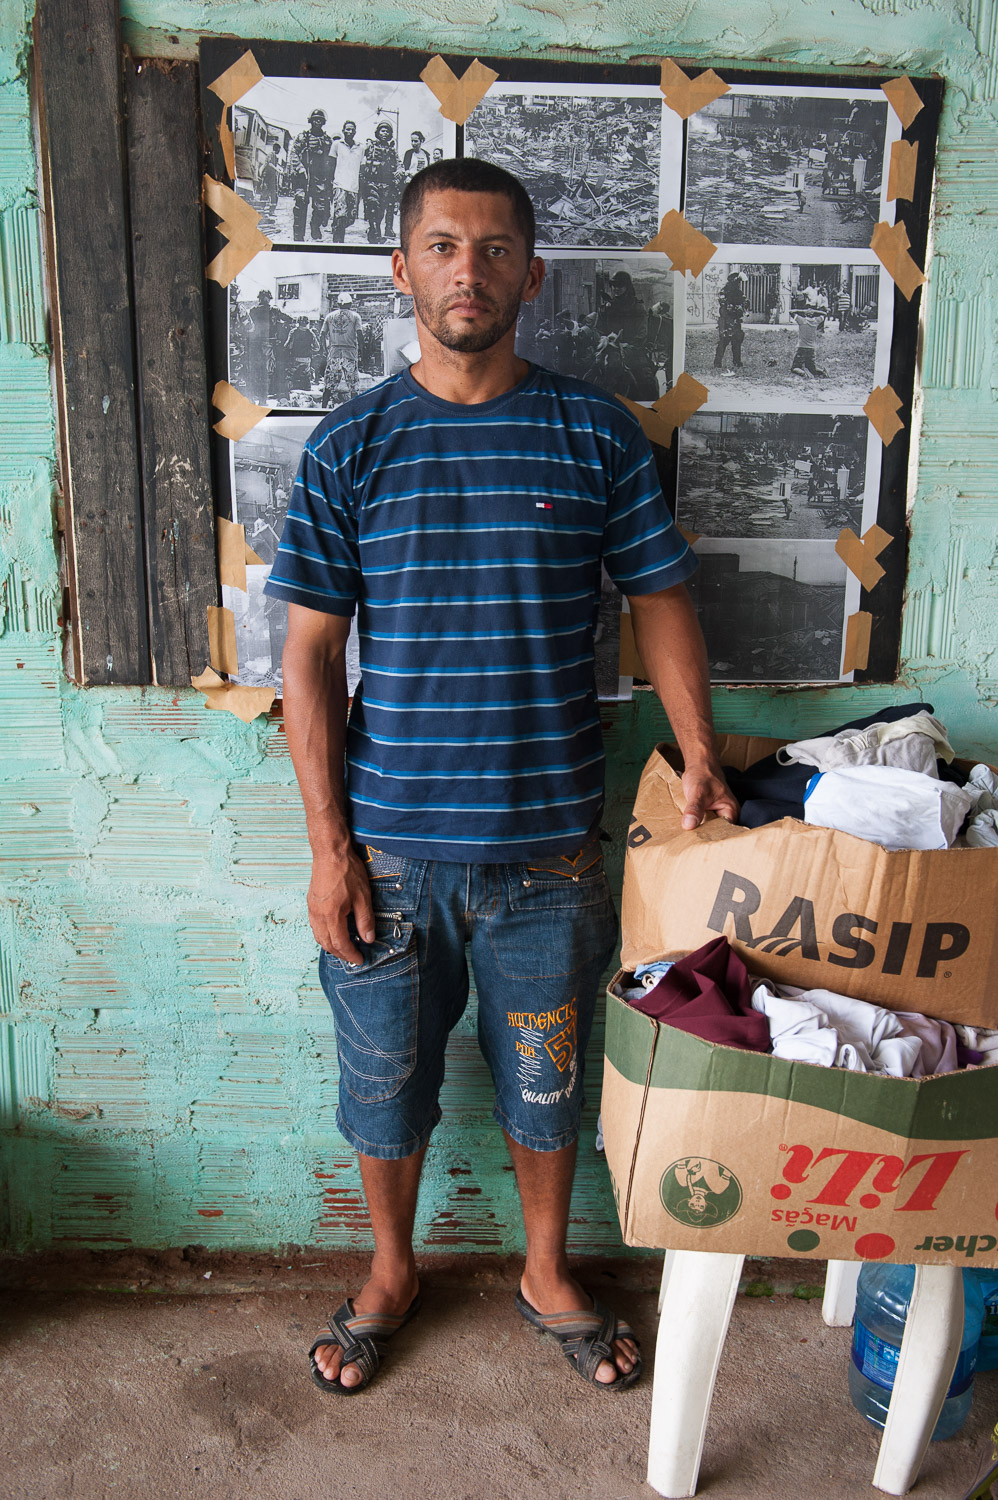 In February 2014, Jean Paulo Teixeina Silva and his family were forcibly evicted – without notice – from his home in the favela (slum) of Alto da Paz in Fortaleza, Brazil. Now homeless, he stands with the only belongings he could carry in front of images of the violent eviction.